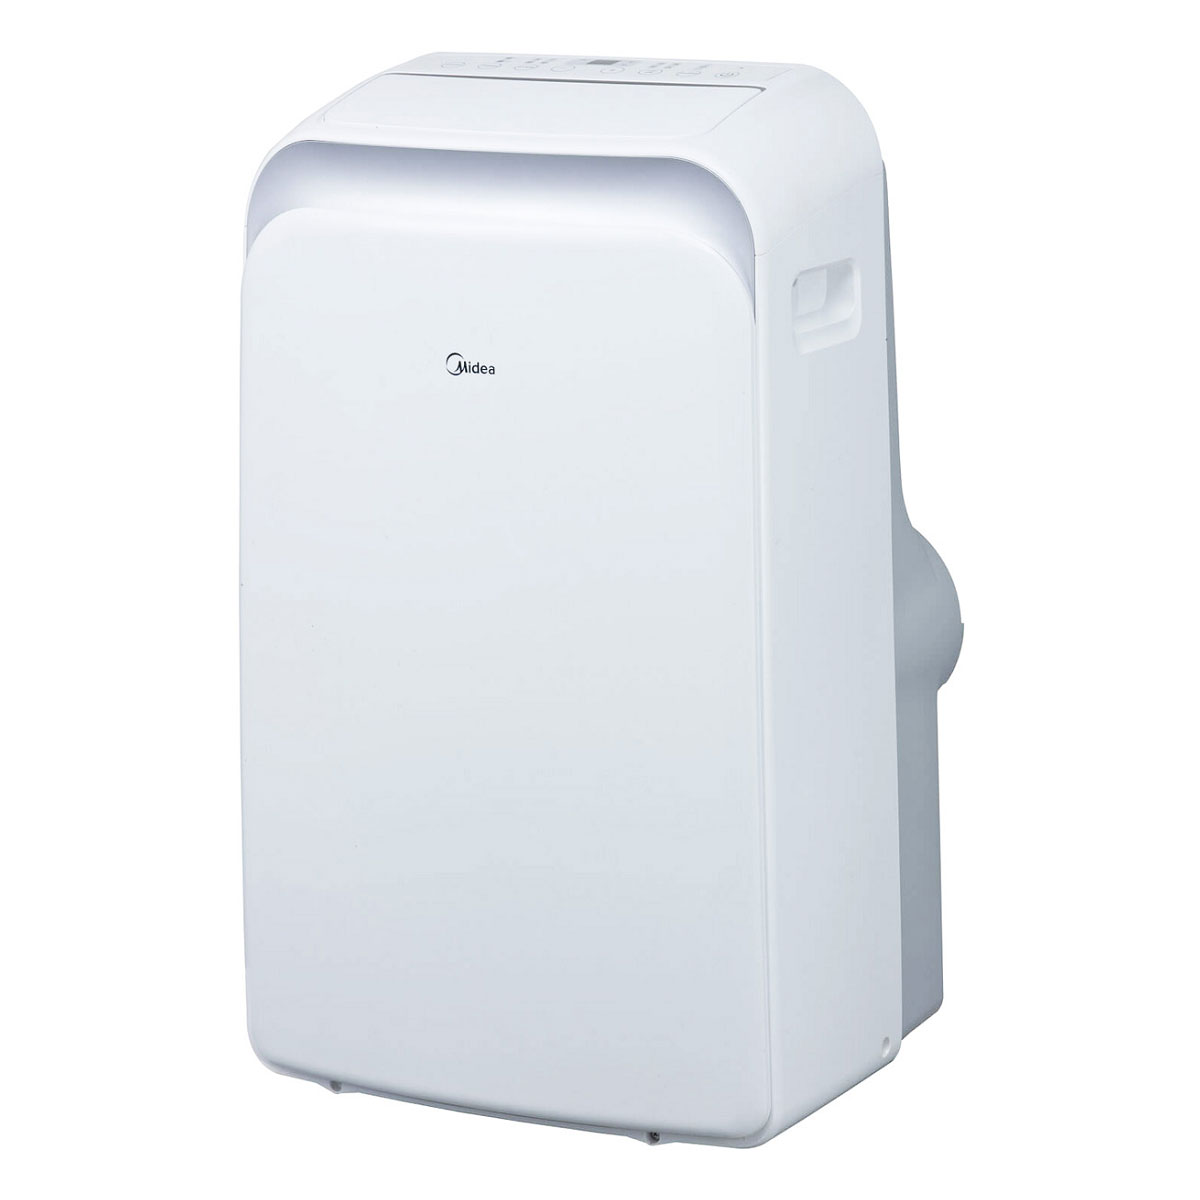 Midea Portable Air-Conditioner MPPD14CRN1